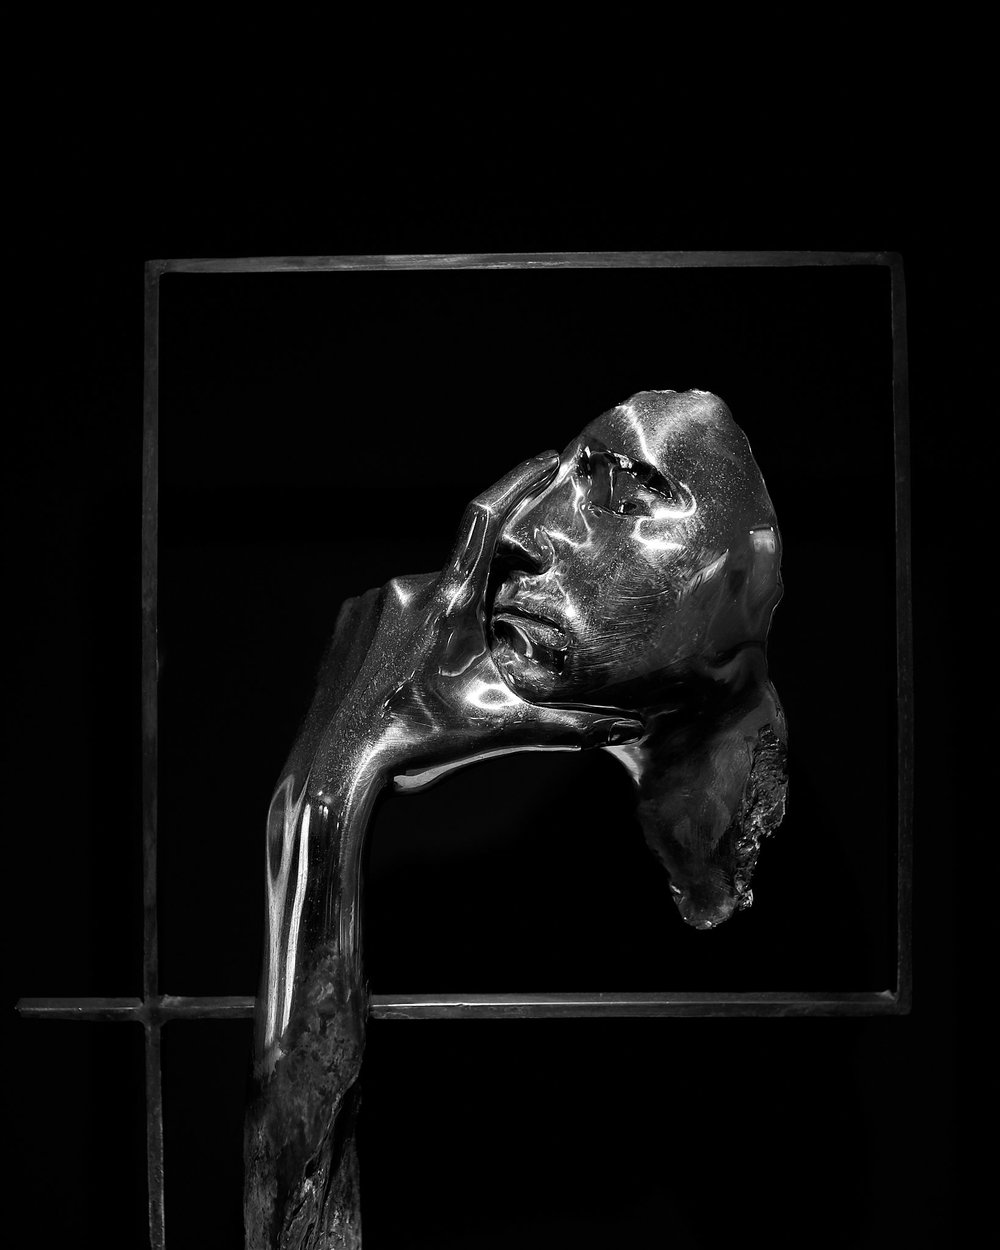 Contemplation, sculpture by Peter Parkanyi